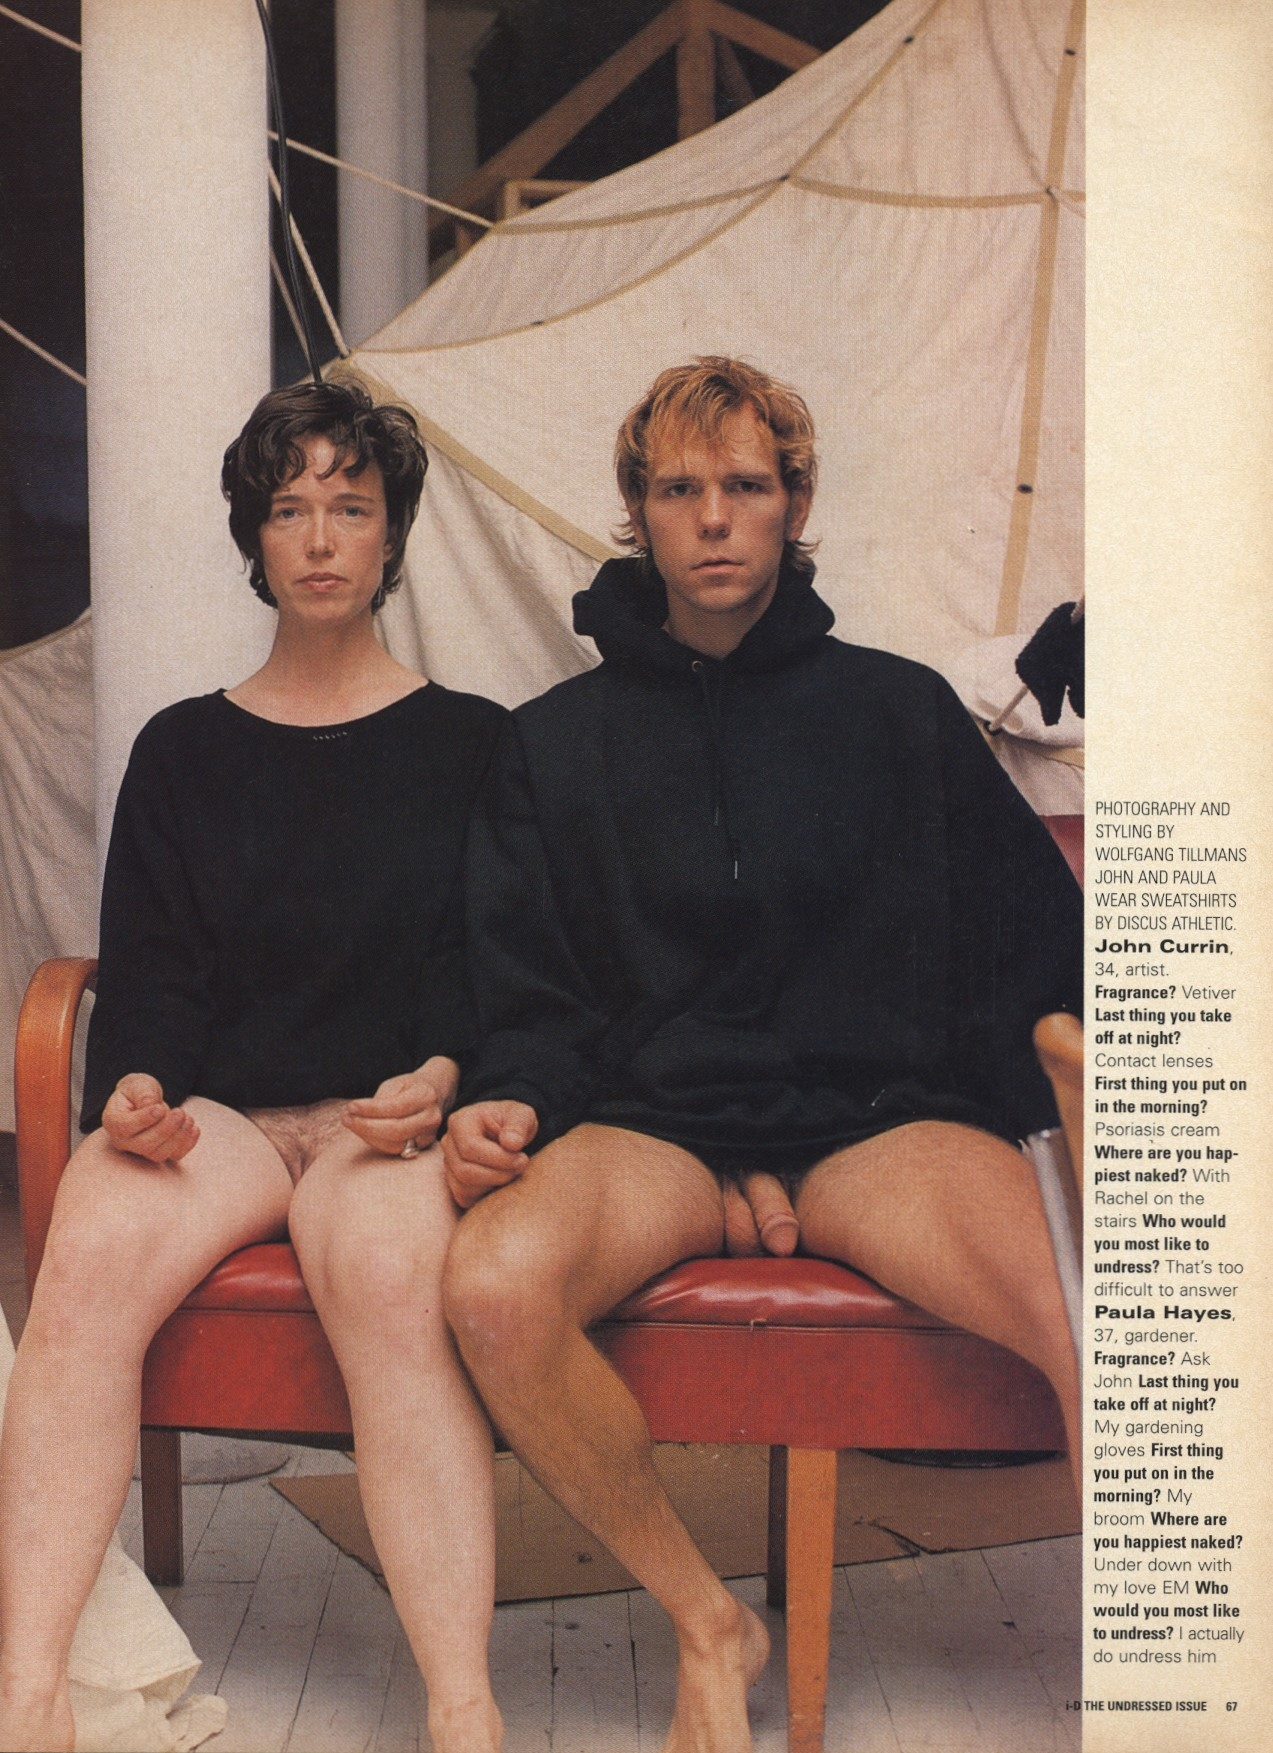 john currin and paula hayes photography and styling by wolfgang tillmans i d no 159 december 1996